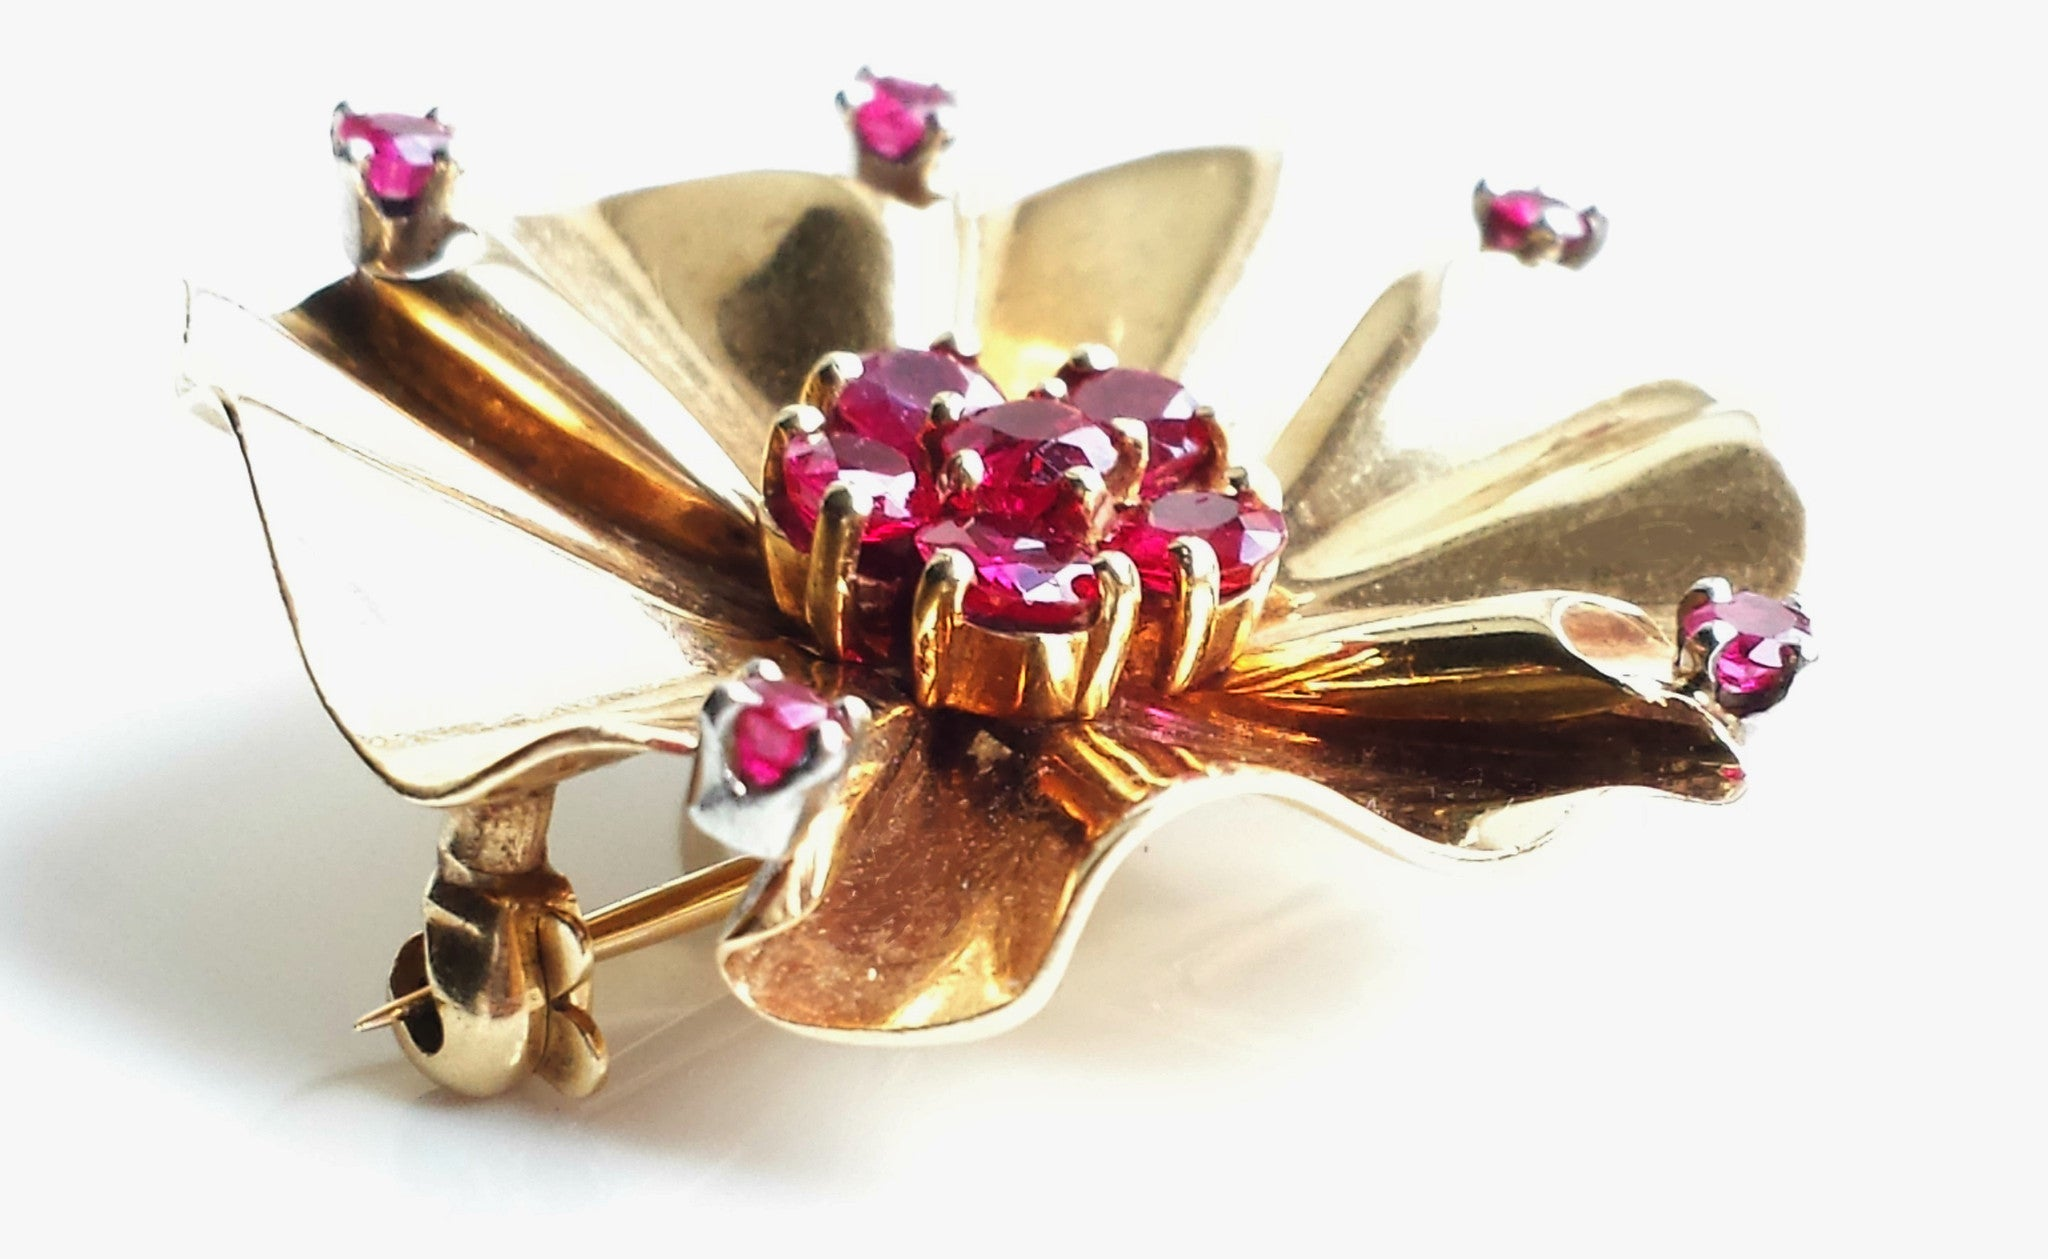 Rare Vintage Retro Tiffany & Co. Mid-century Modernist 1940s 14k Gold & Ruby Flower Brooch